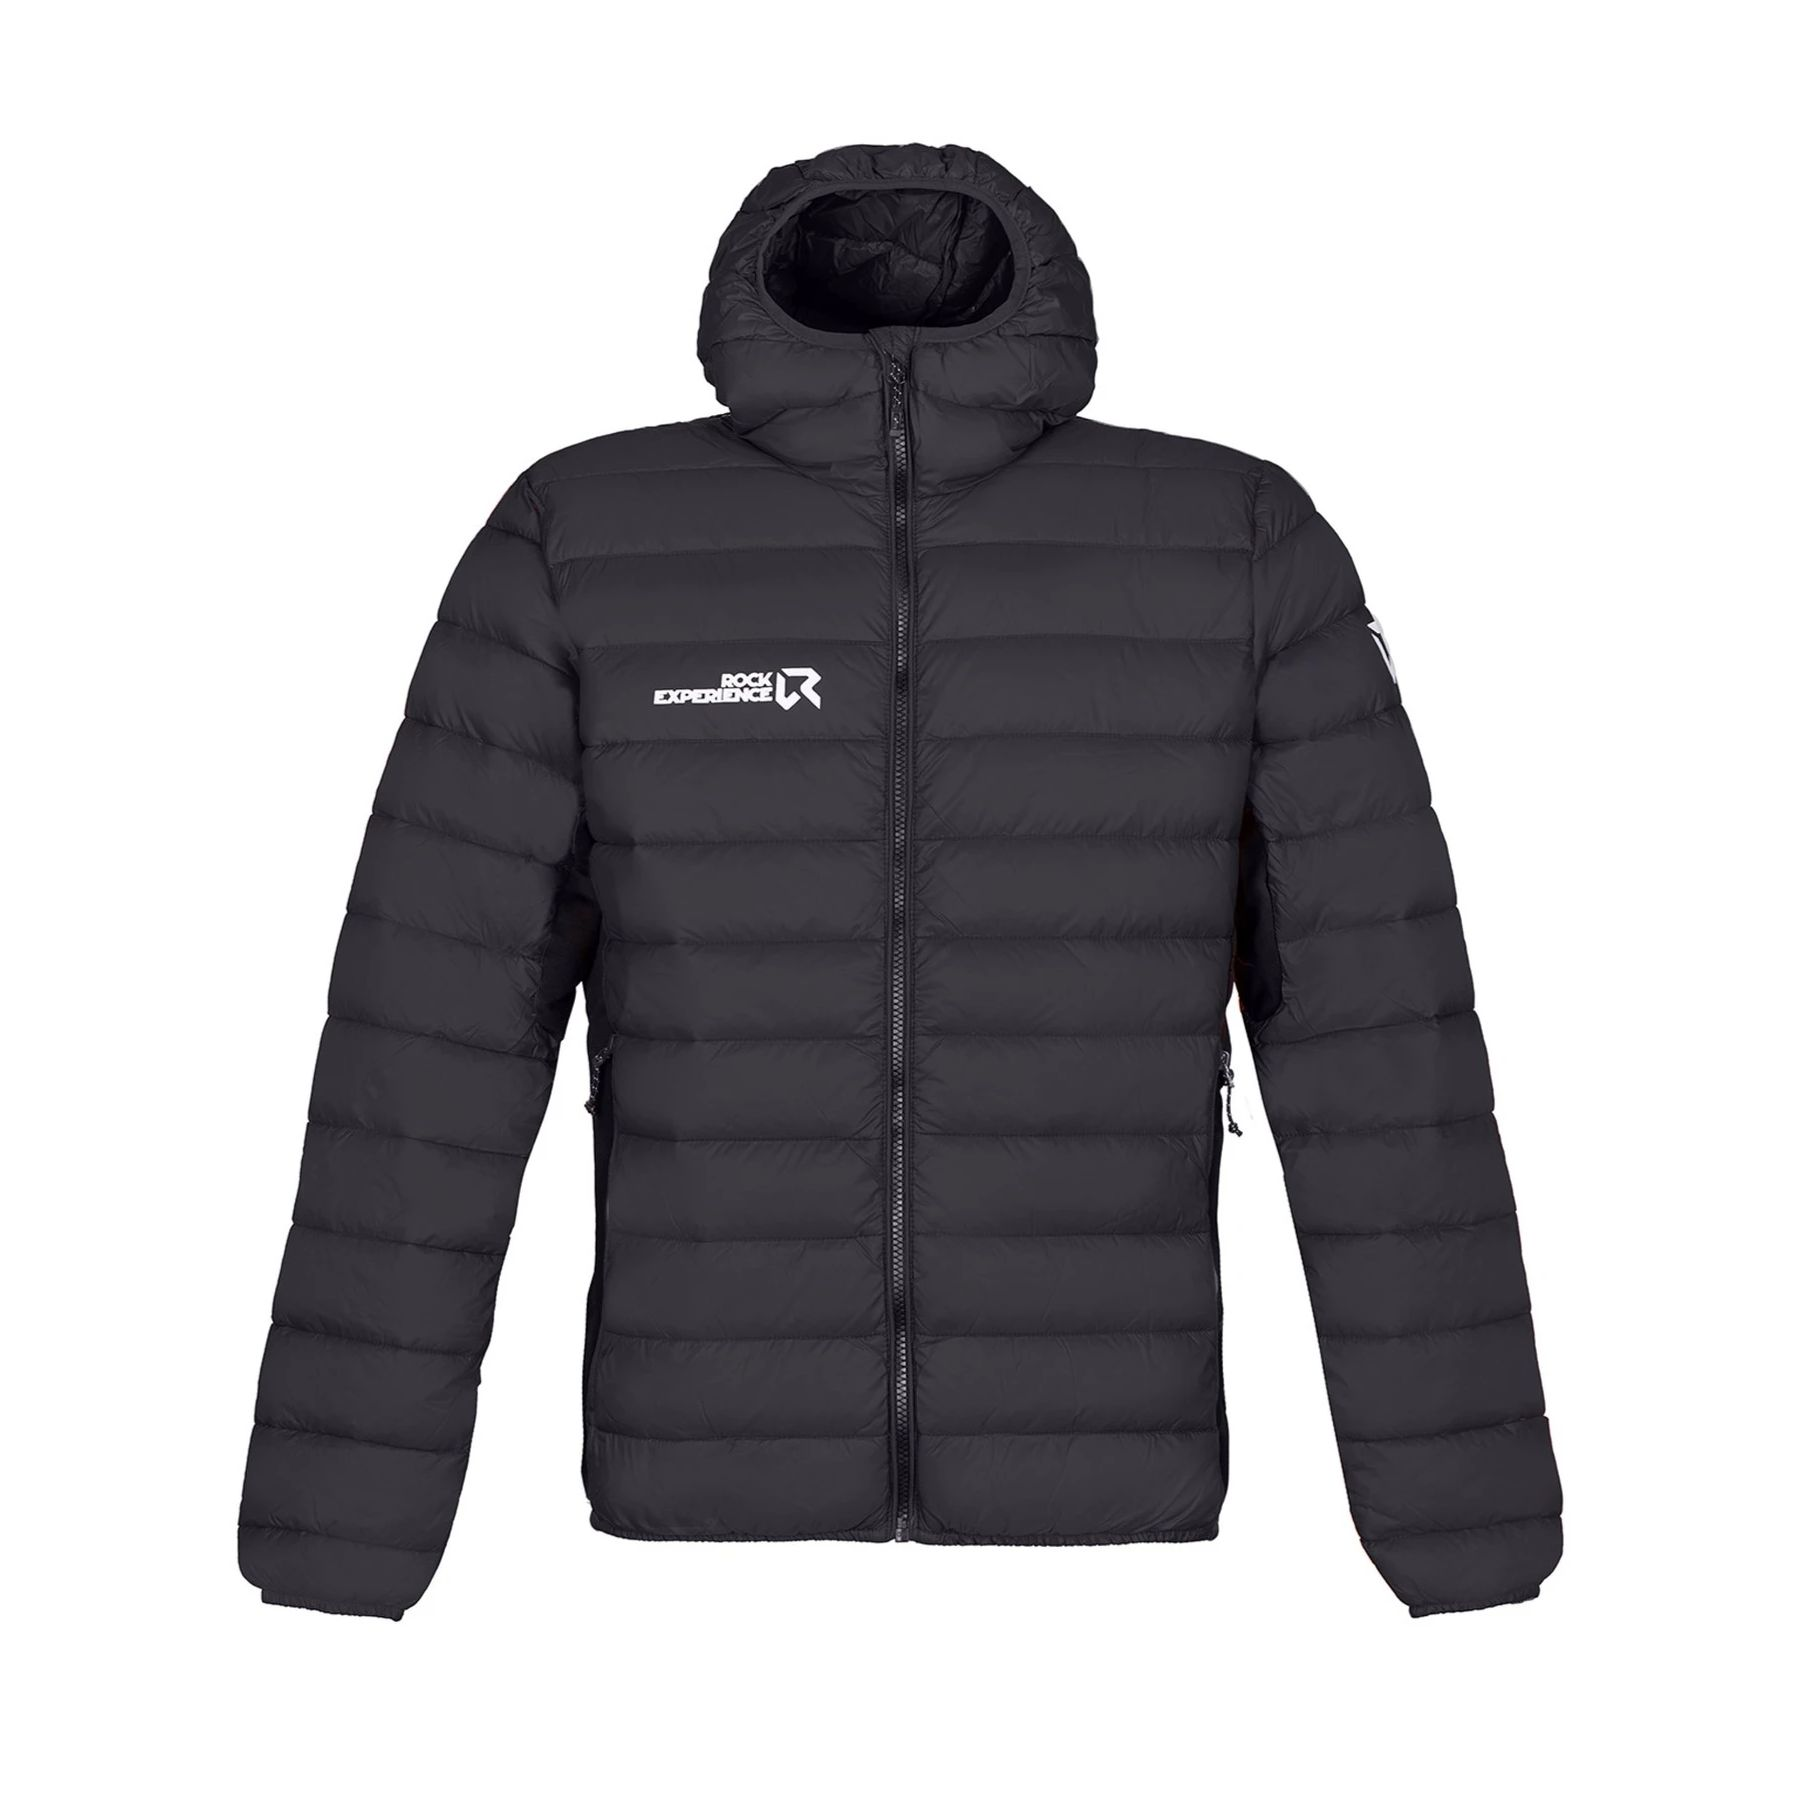 Clothing -  rock experience Fortune Hybrid Down Jacket